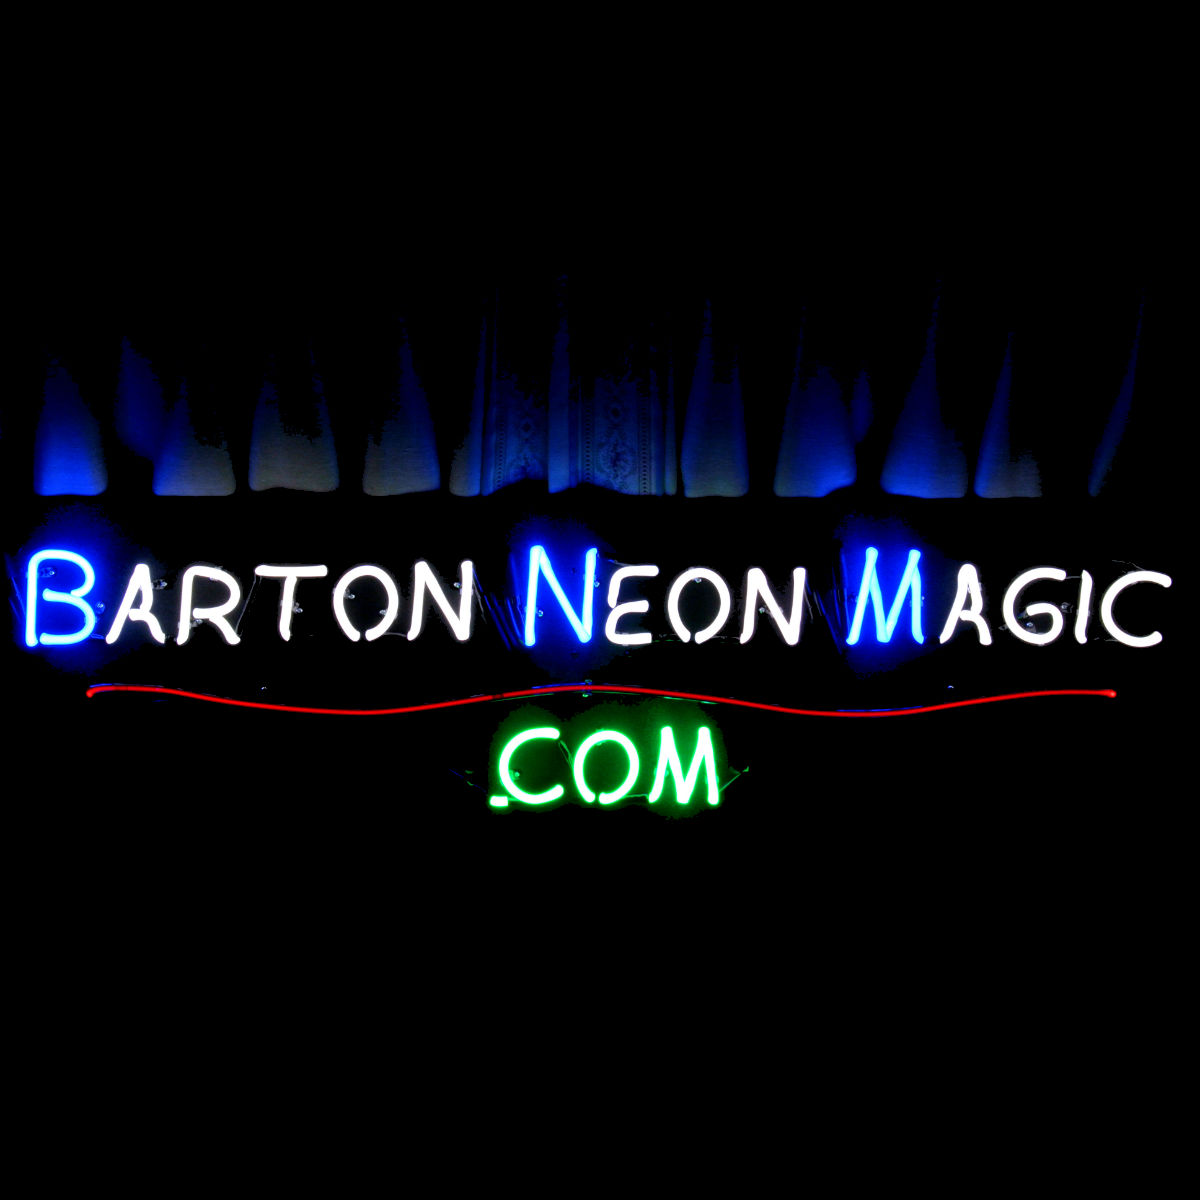 Custom Designer Neon Lighting - Chandeliers, Sculptures, and Artworks by John Barton - BartonNeonMagic.com